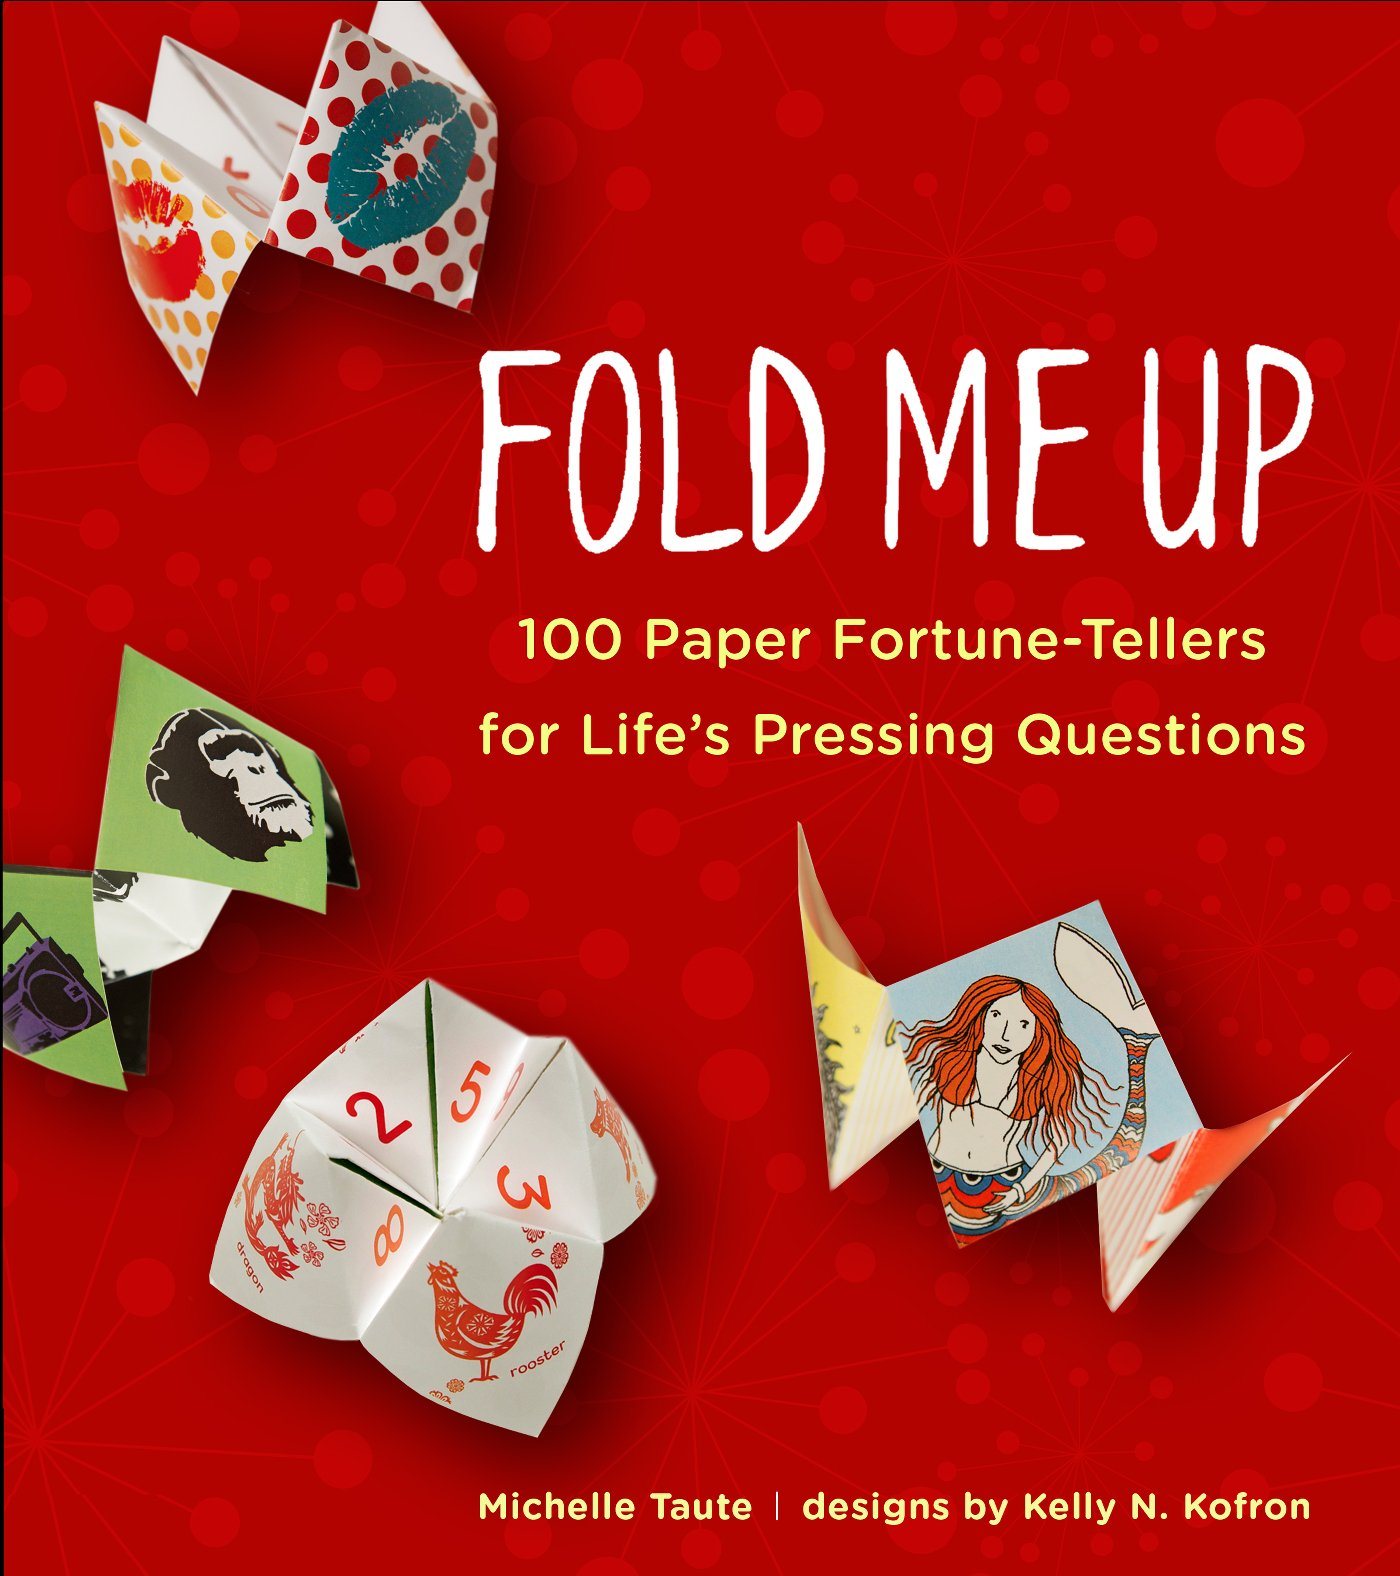 Fold me up 100 paper fortune tellers for lifes pressing fold me up 100 paper fortune tellers for lifes pressing questions michelle taute 9780399163302 amazon books jeuxipadfo Gallery